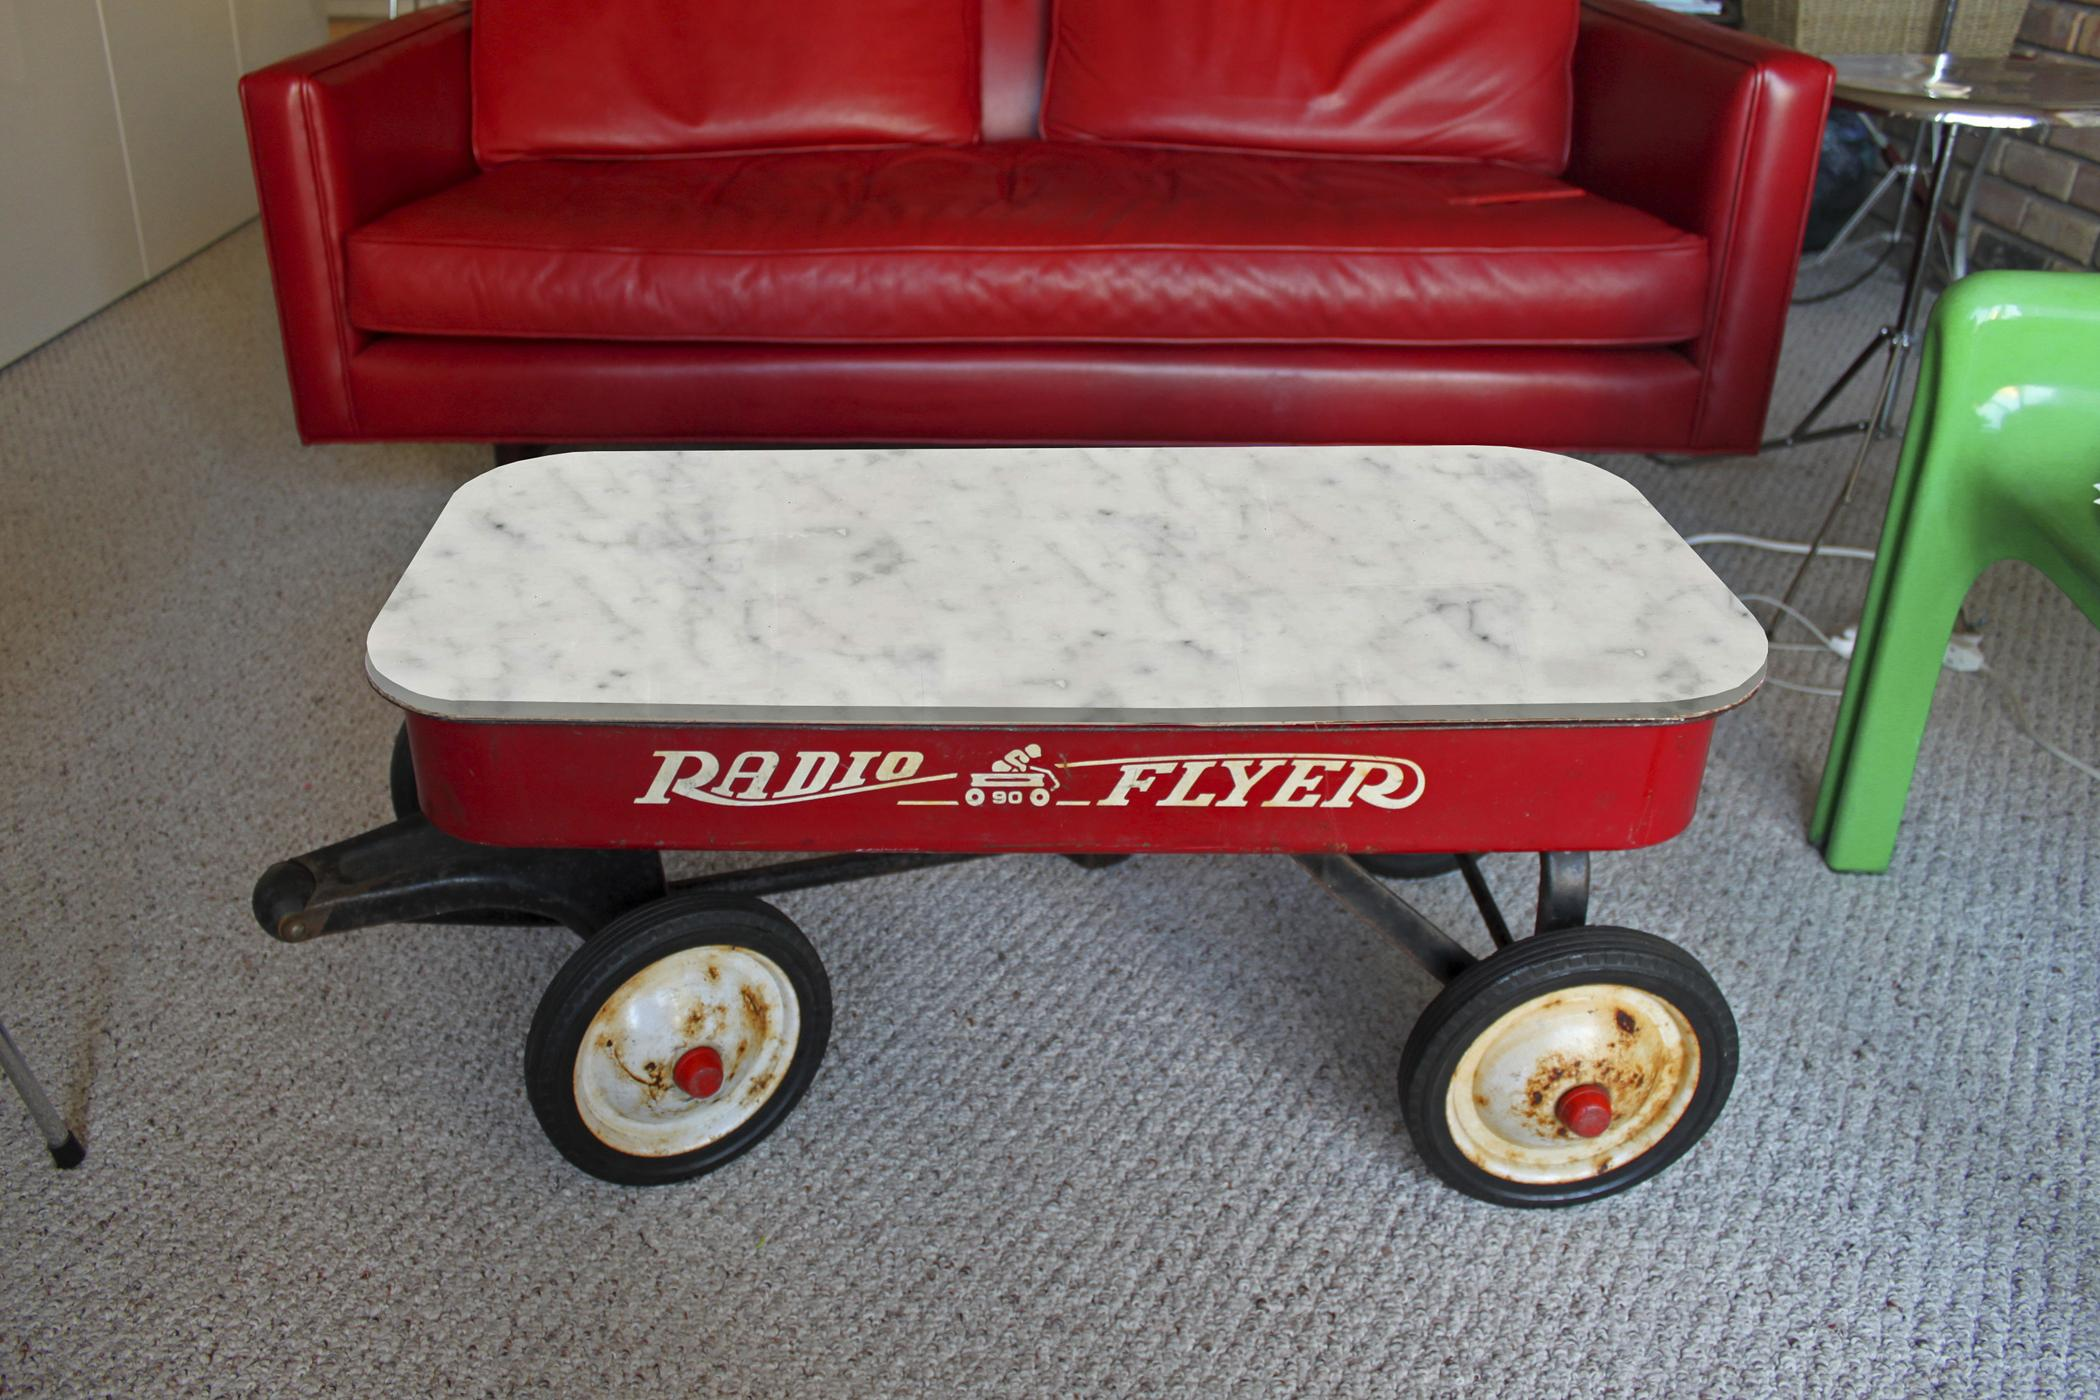 A red Radio Flyer wagon with a white marble top serves as a coffee table in a sitting room setting.